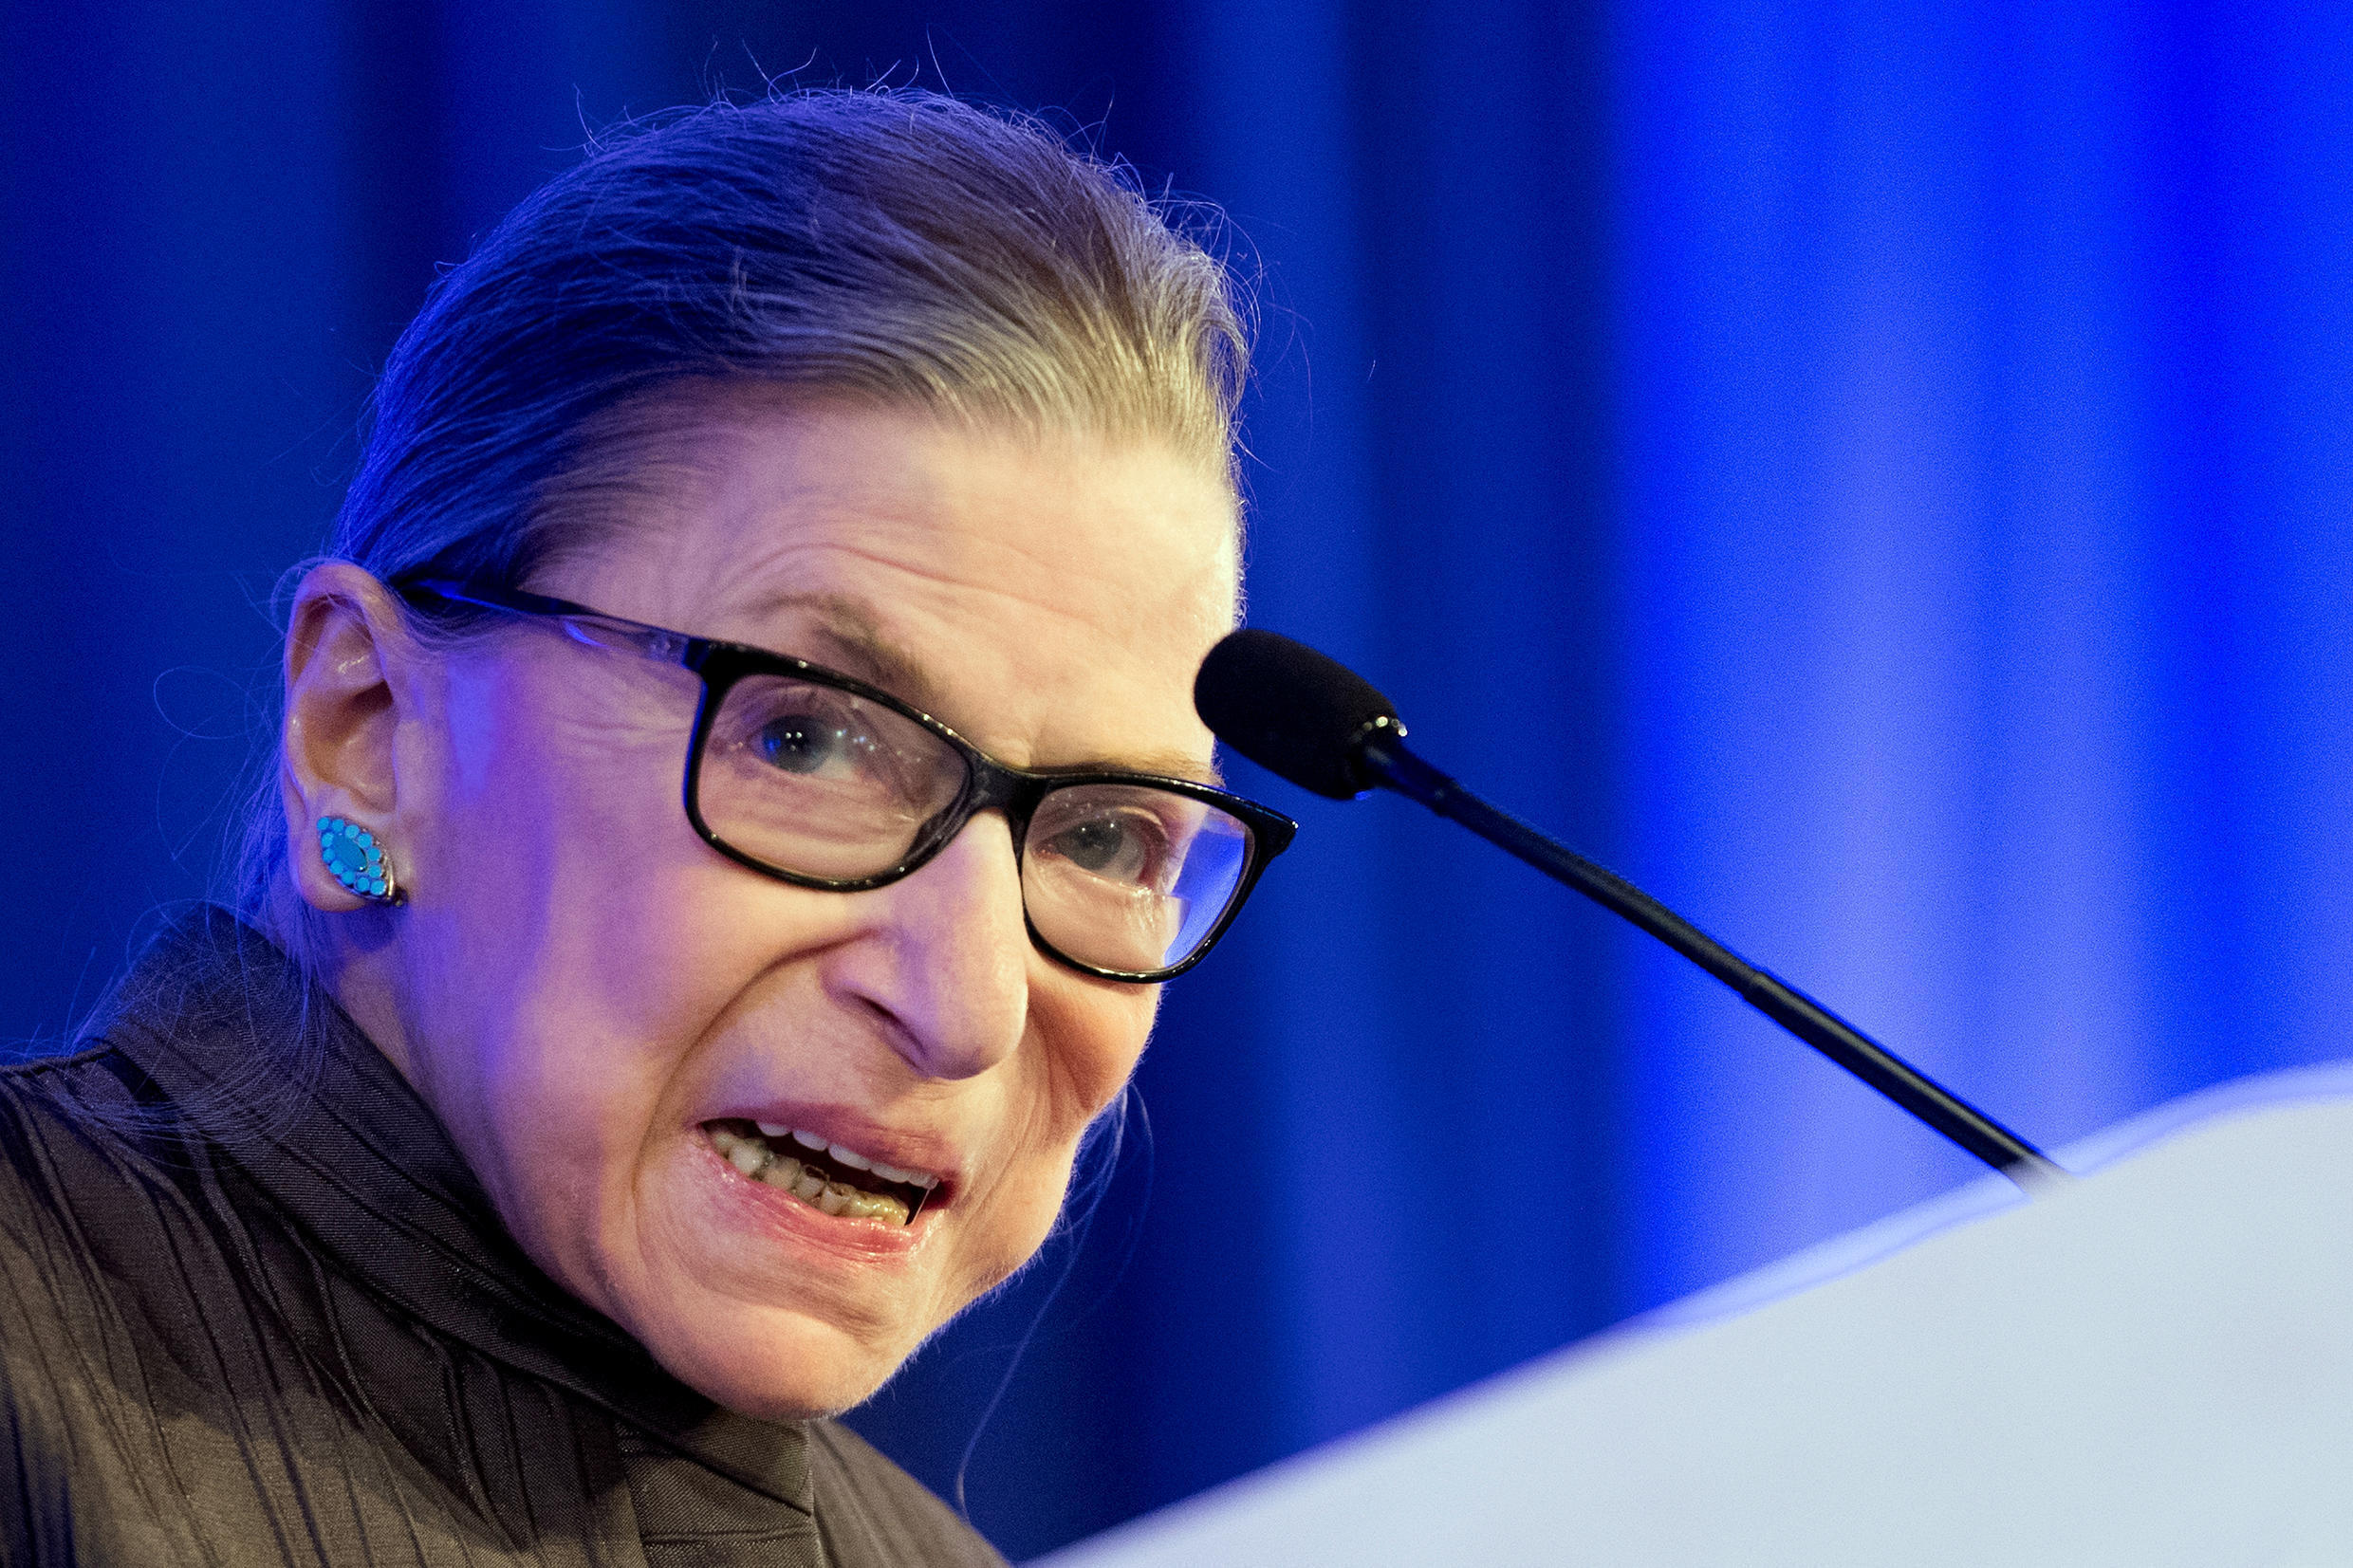 US Supreme Court Justice Ruth Bader Ginsburg is undergoing chemotherapy for a recurrence of cancer.